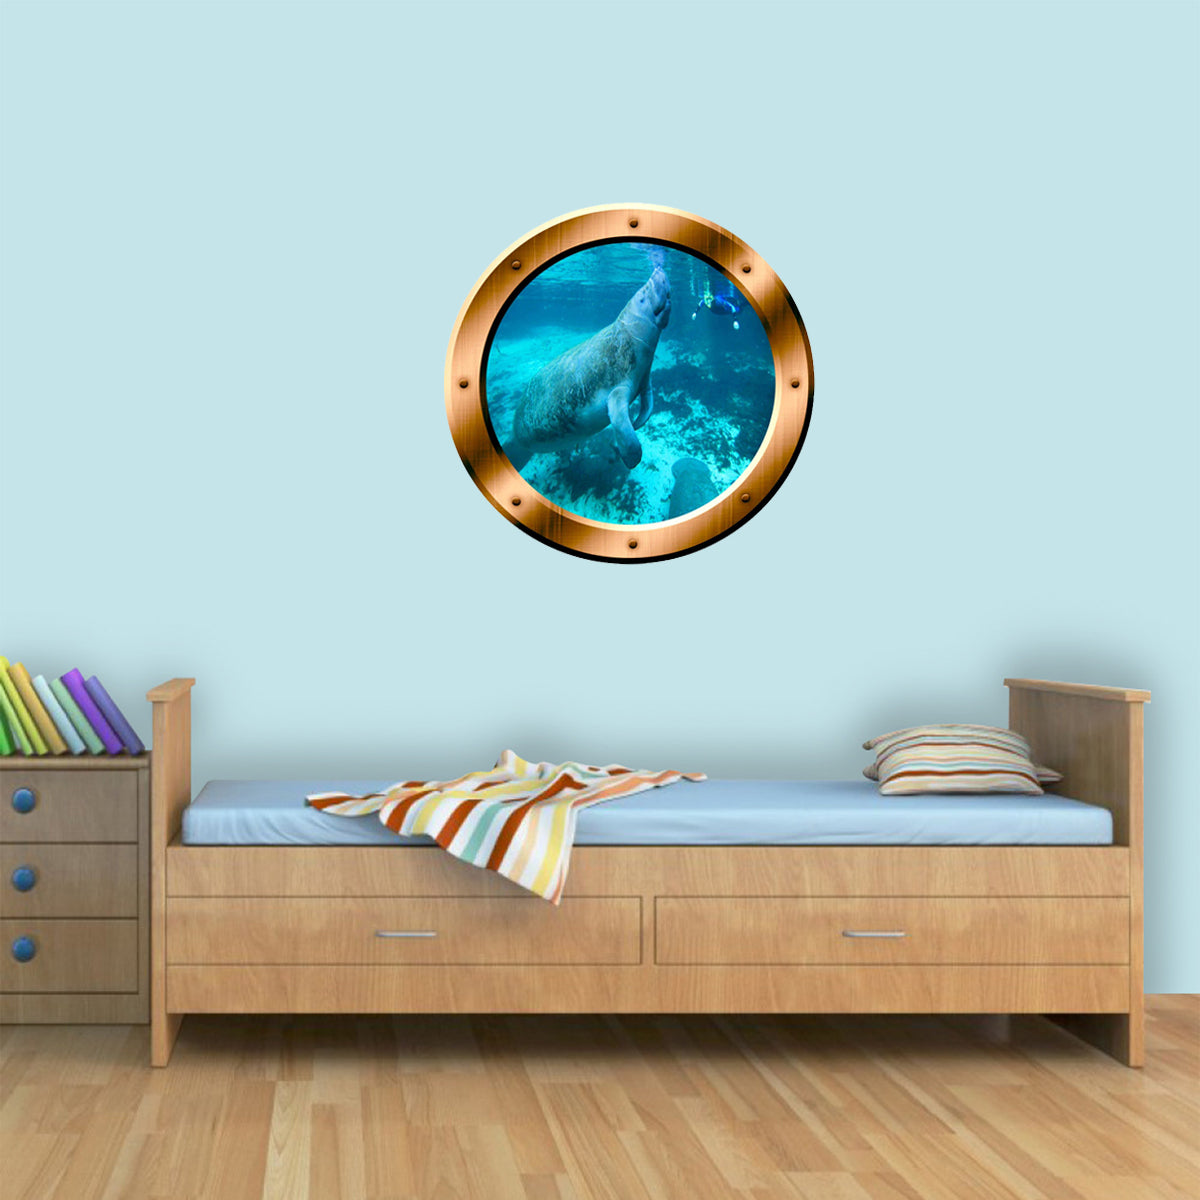 VWAQ Manatee Bronze Porthole Peel and Stick Vinyl Wall Decal - BP25 - VWAQ Vinyl Wall Art Quotes and Prints